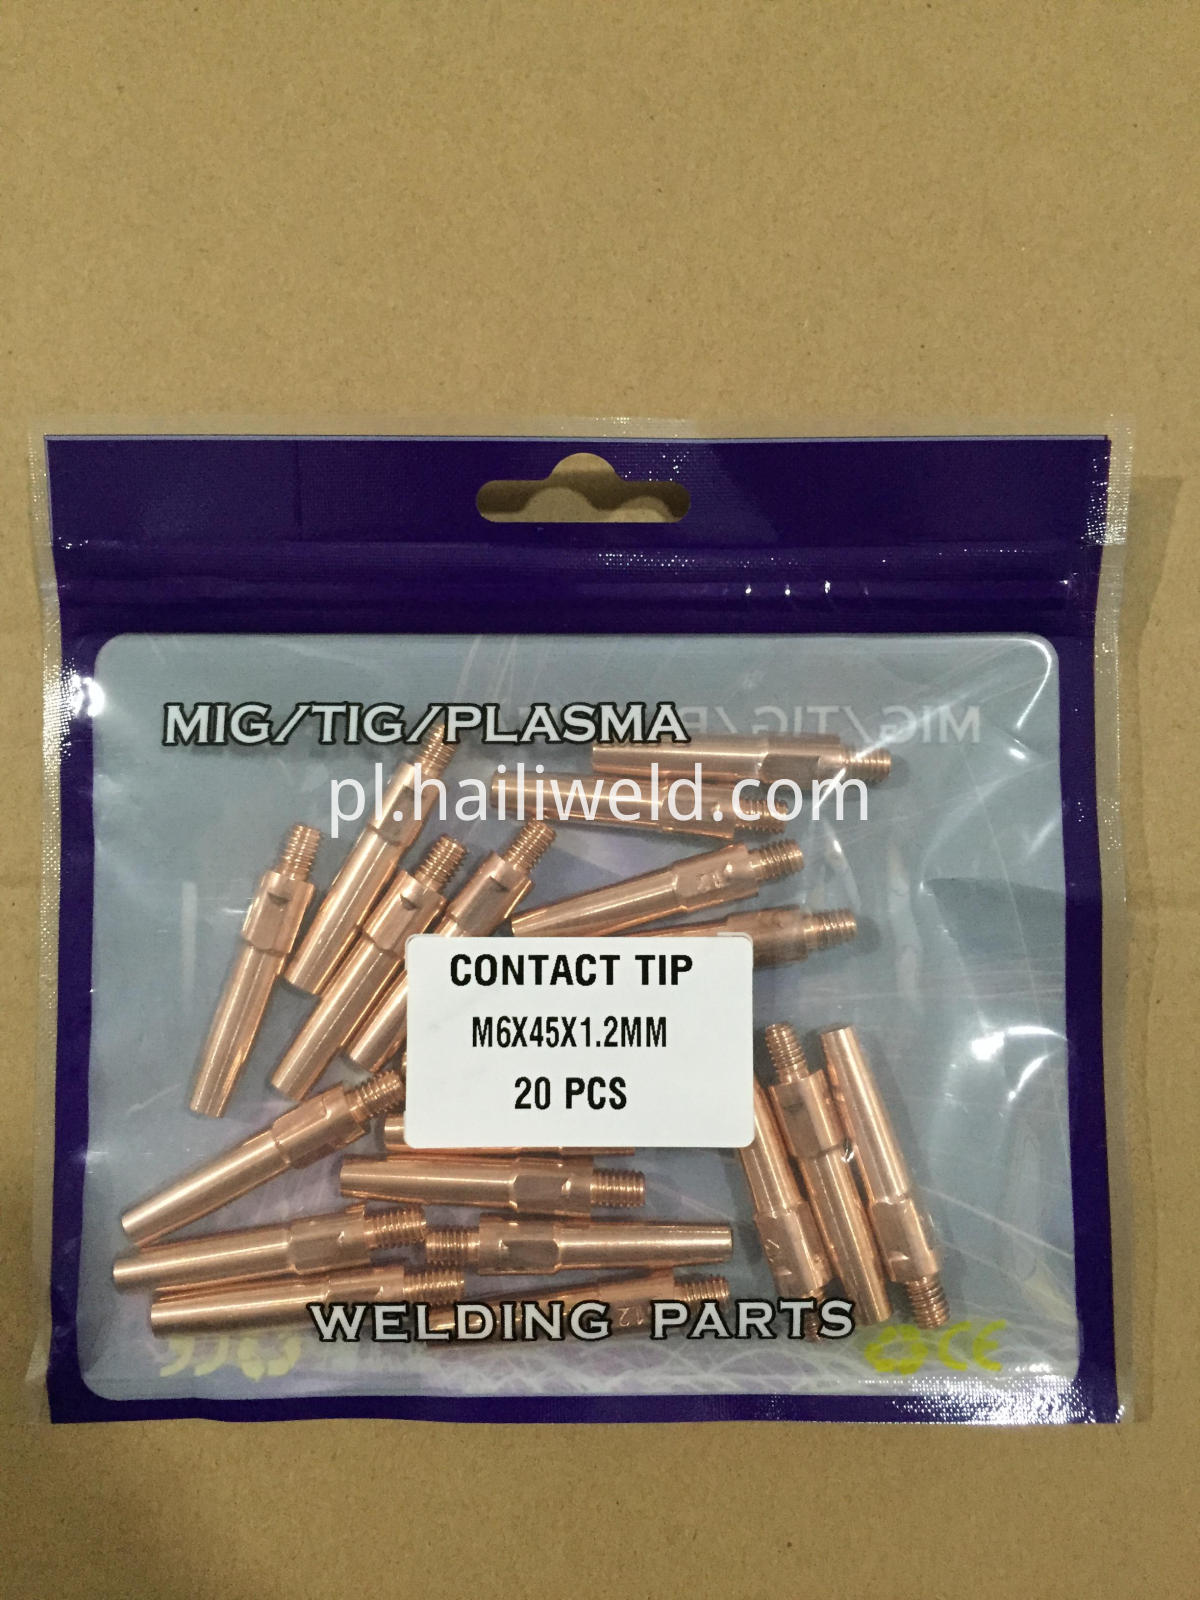 Contact Tip M6x45x1 2mm